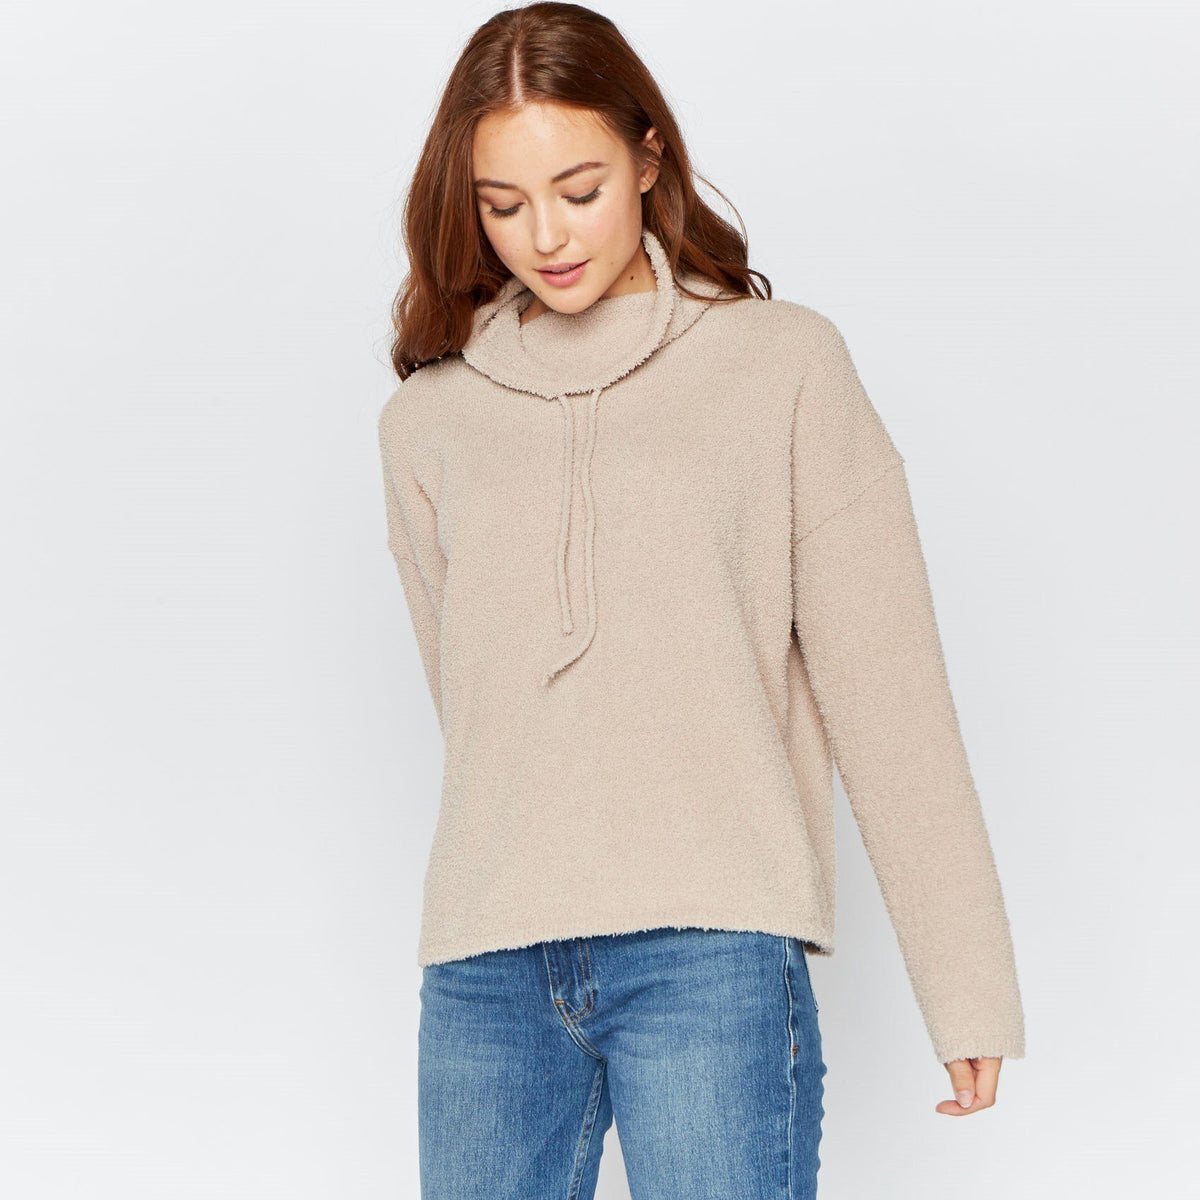 Nicole Sweater Thread & Supply Taupe S